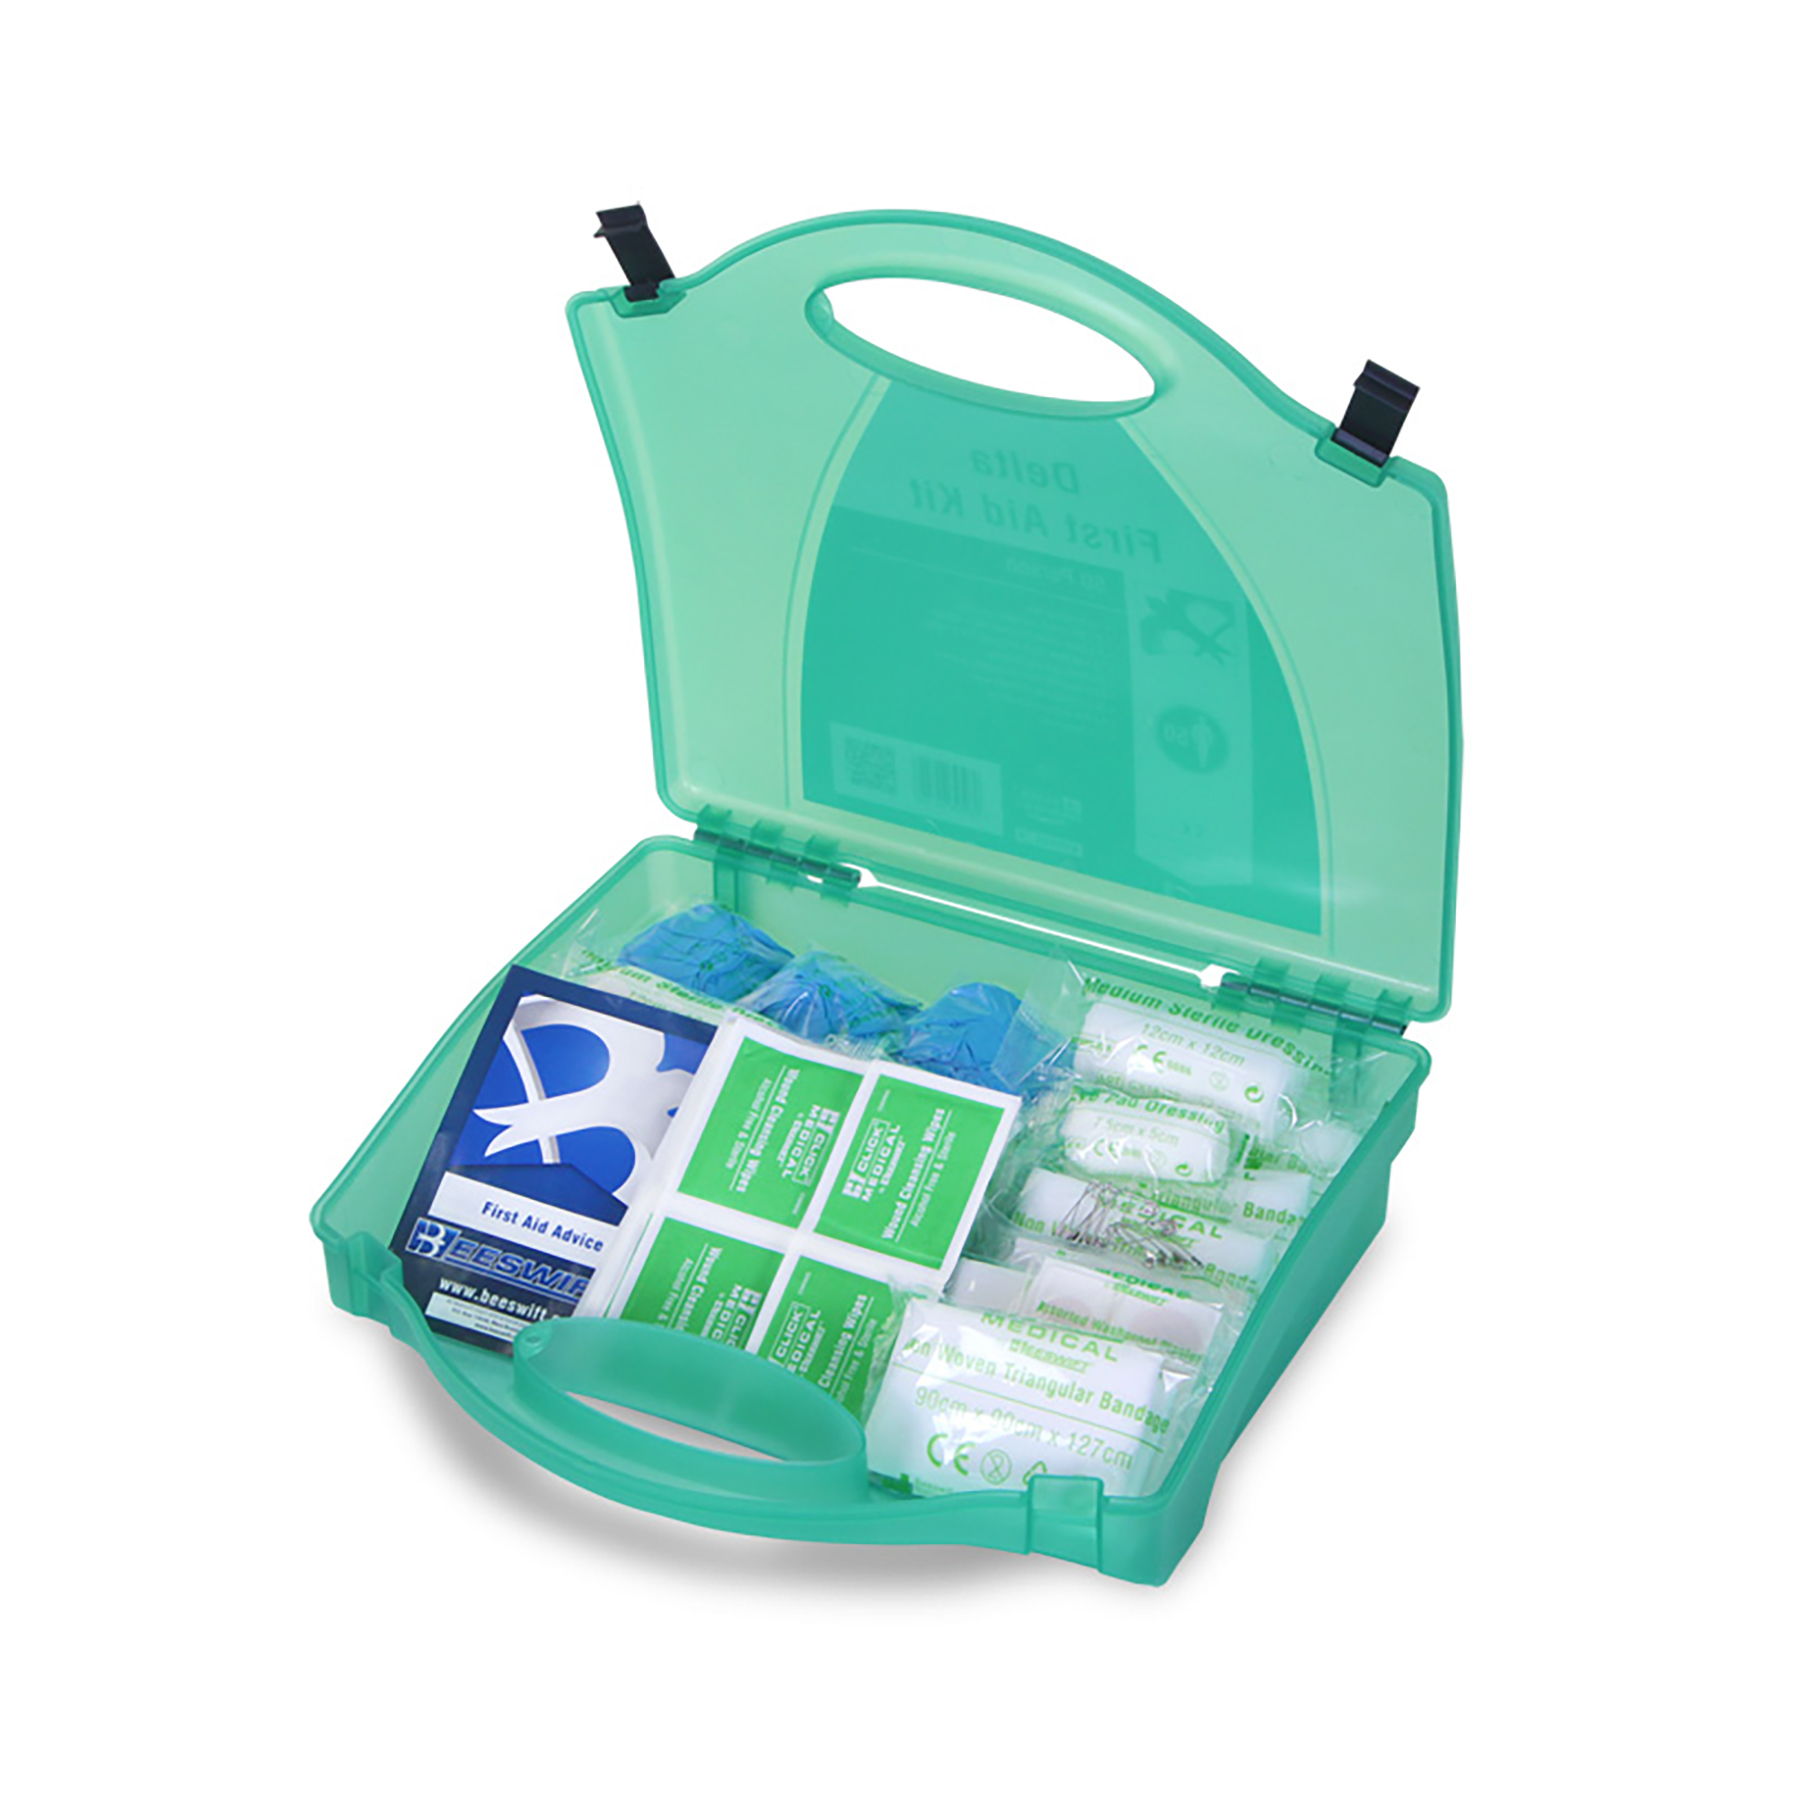 Equipment 5 Star Facilities First Aid Kit HS1 1-10 Person